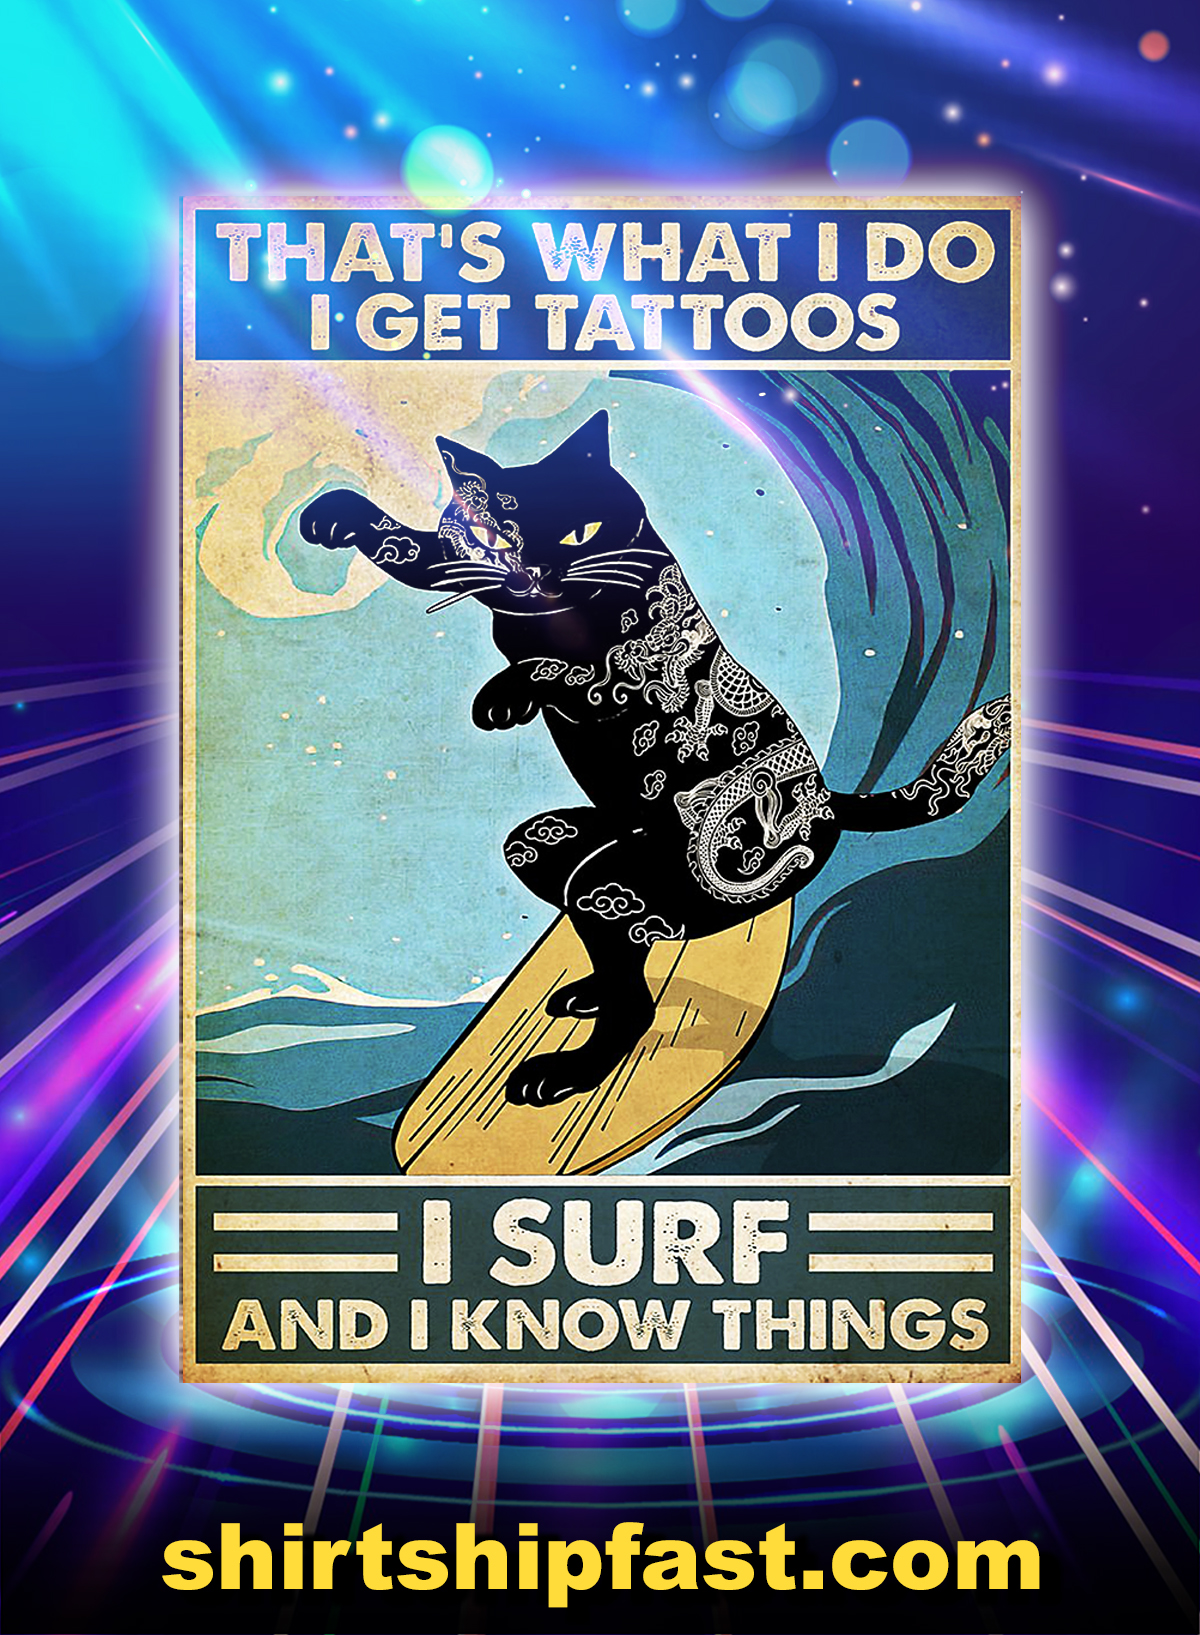 Cat Surfing That's What I Do I Get Tattoos I Surf And I Know Things Poster - A4